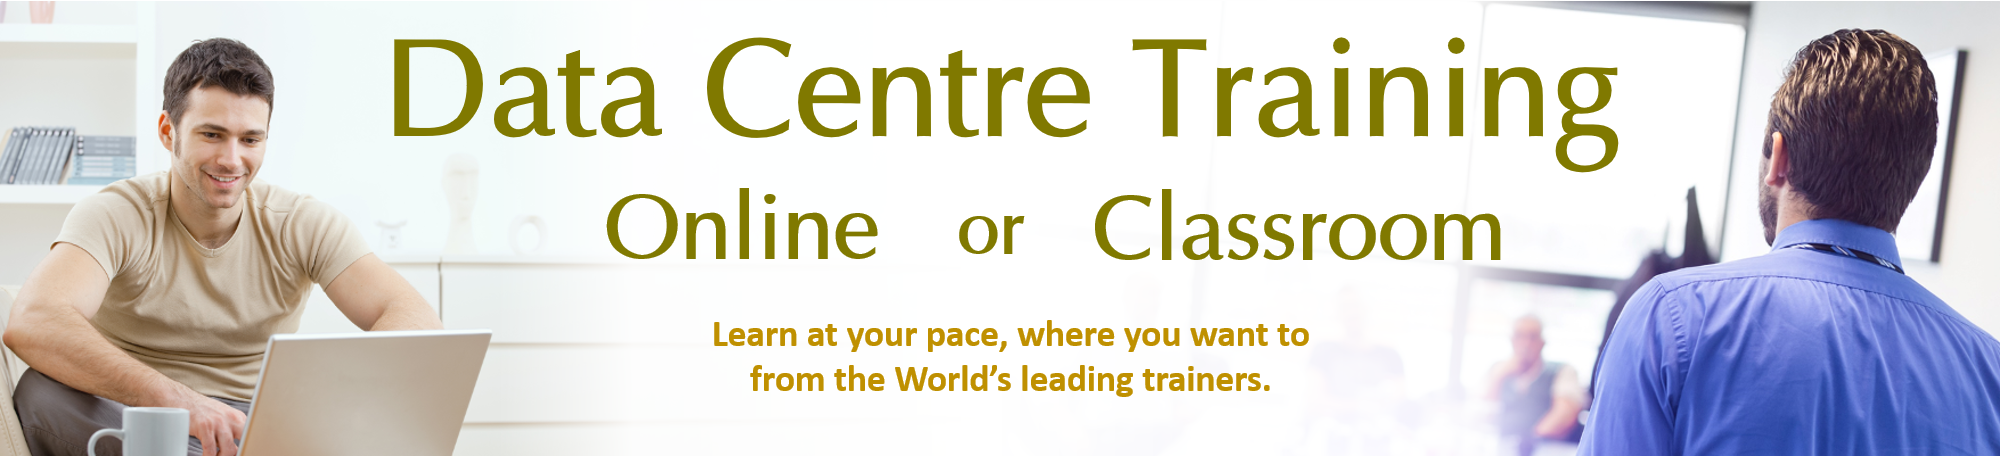 Data Centre training online and classroom courses. Learn at your own pace, where you want to from the World's leading trainers.